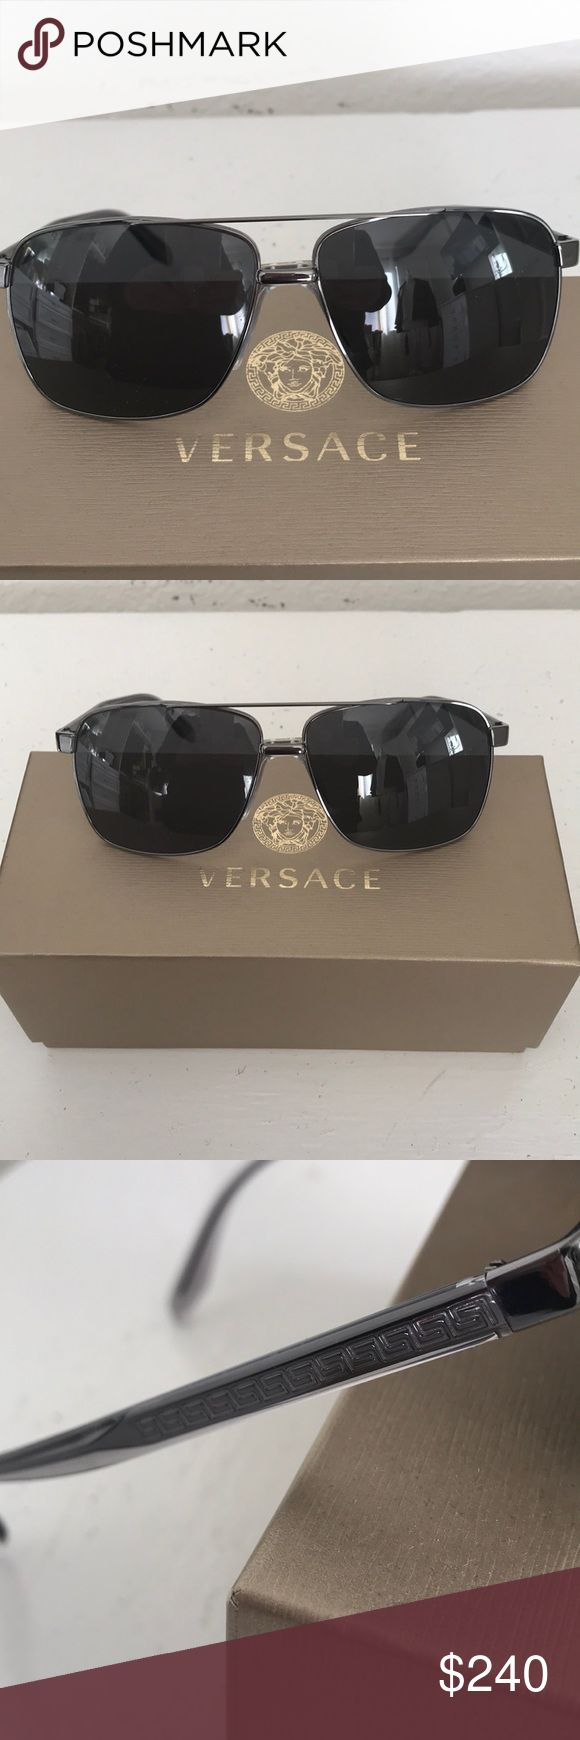 ❌🎄SALE🎄❌ NEW VERSACE MENS SUNGLASSES. ❌🎄SALE🎄❌ NEW VERSACE MENS SUNGLASSES 🕶 MADE  IN ITALY.MOD. 2174 1001/87 59-13 145 3N. TITANIUM FRAME. Versace Accessories Sunglasses